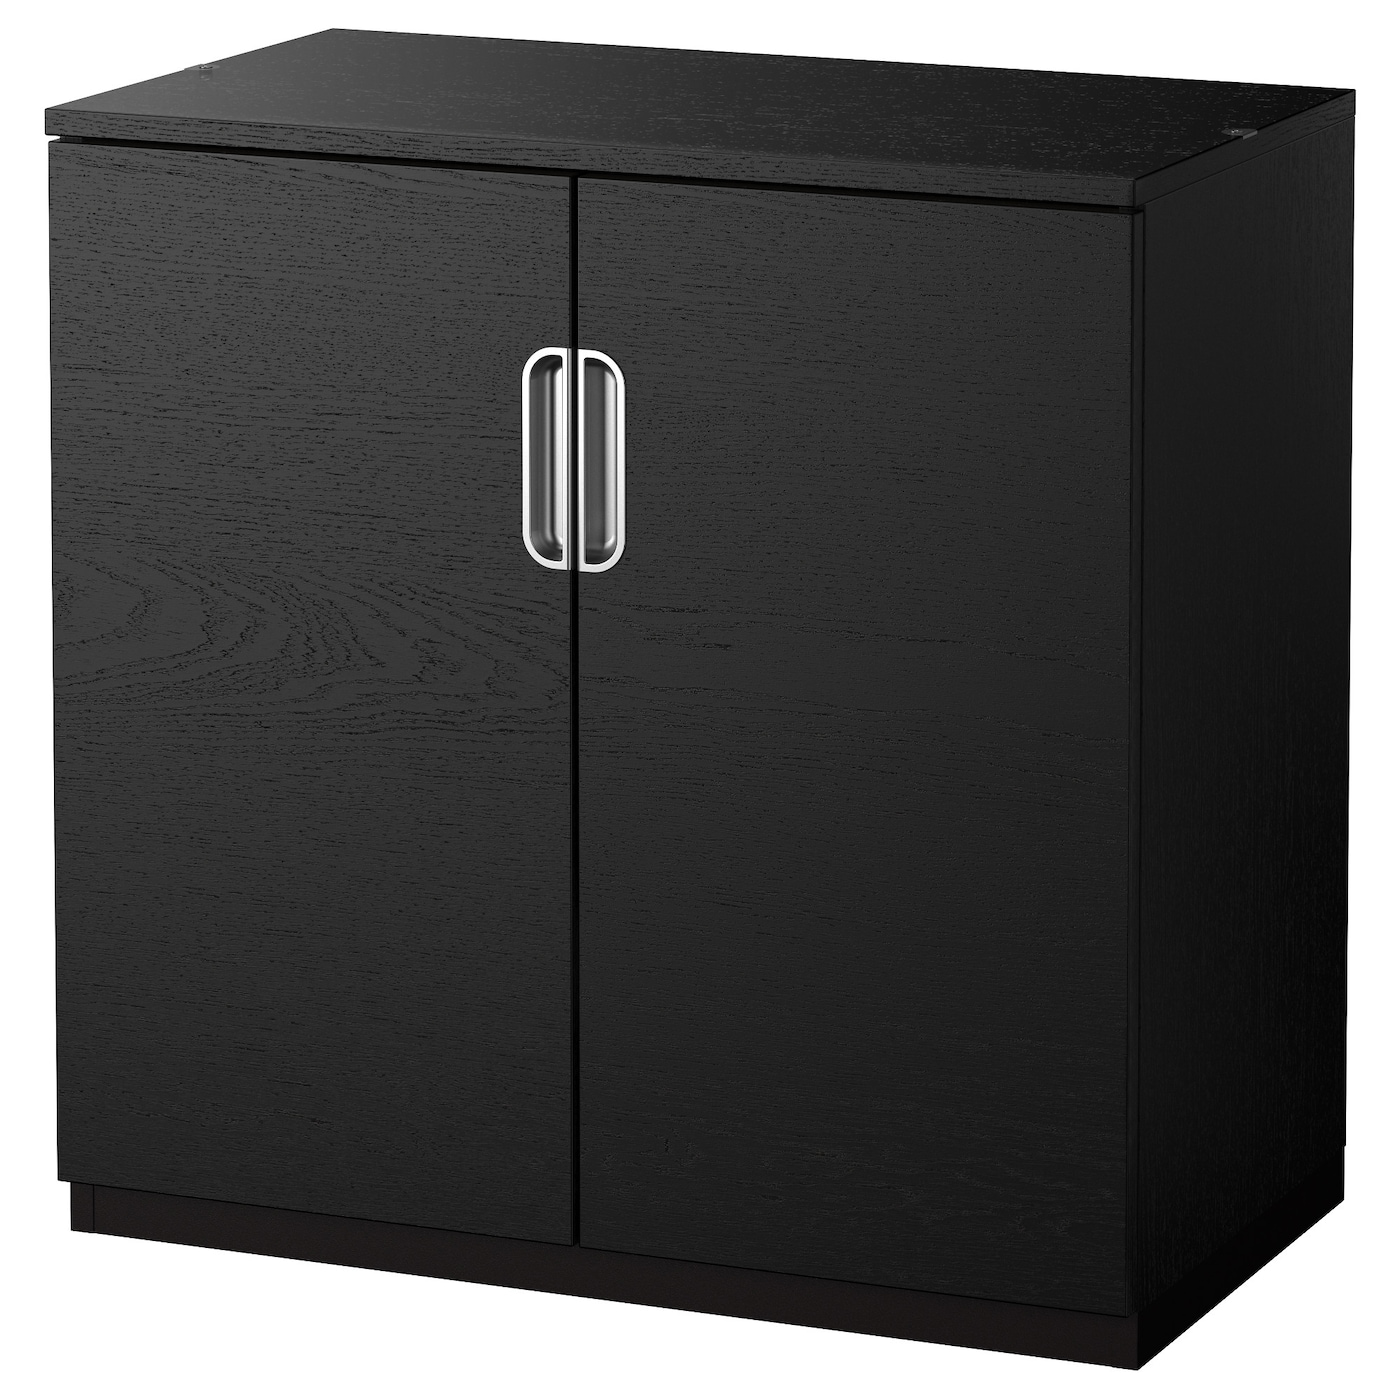 Galant cabinet with doors black brown 80x80 cm ikea - Ikea cabinet doors on existing cabinets ...